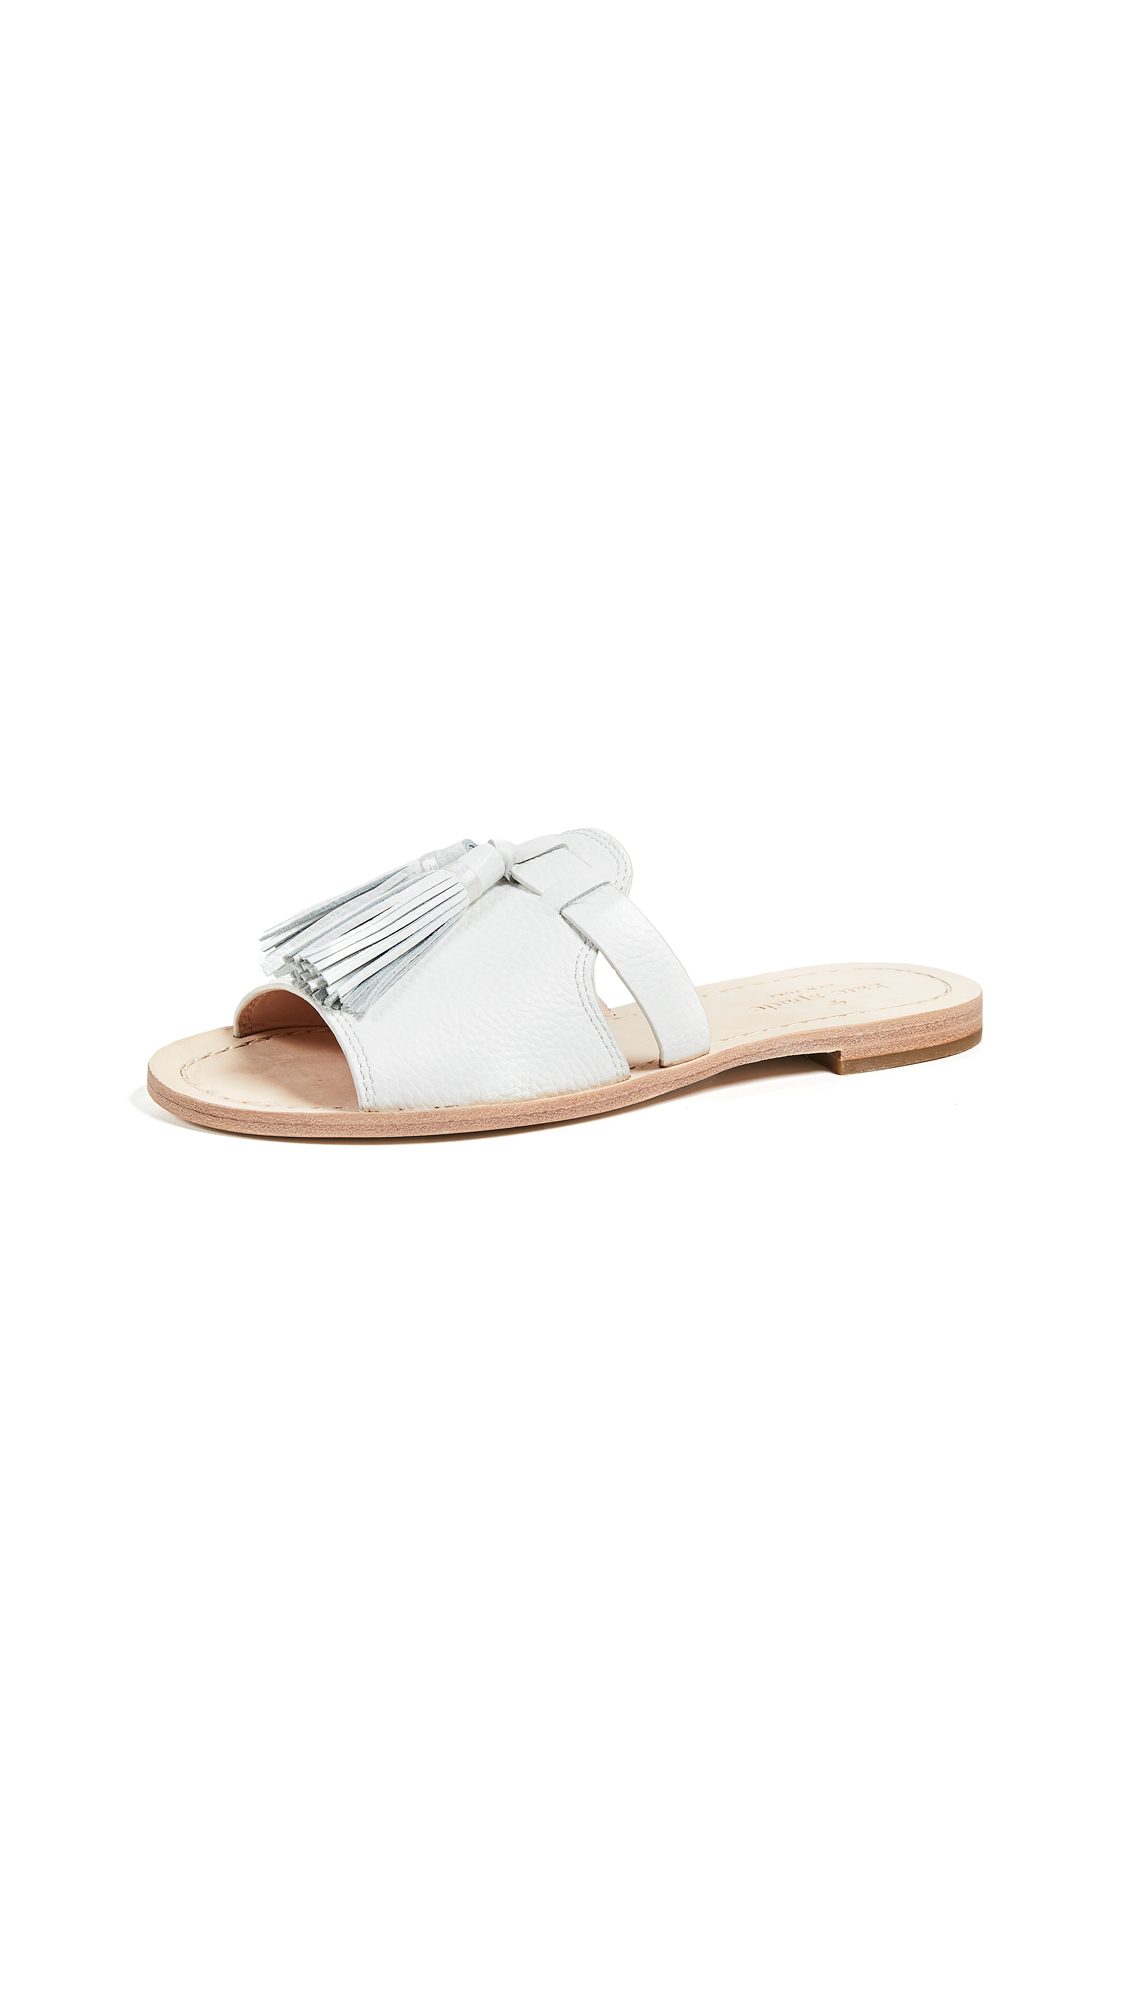 Kate Spade New York Coby Slides - White